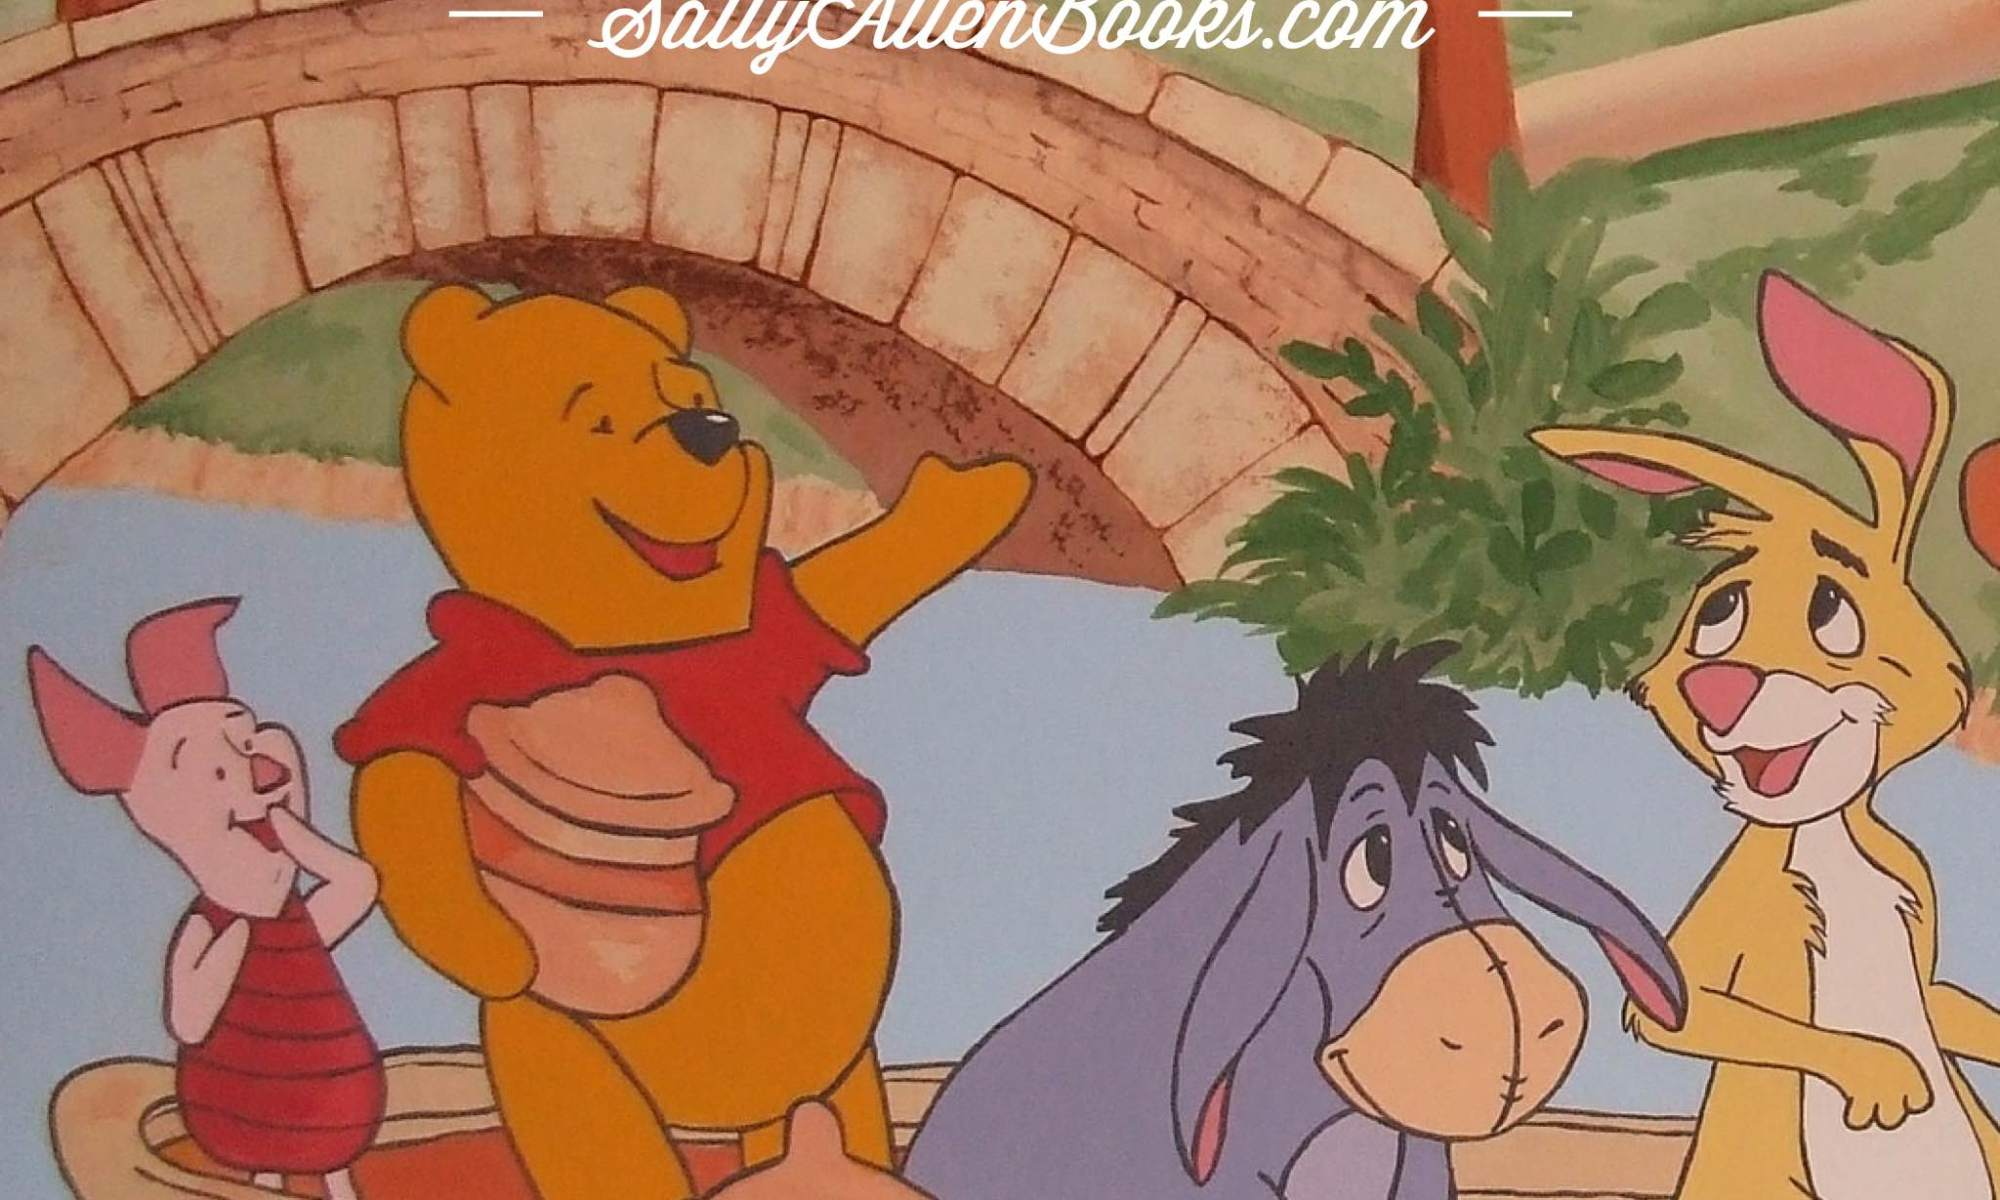 For Winnie-the-Pooh's 90th birthday, a few favorite quotes and a recording of A. A. Milne reading from his iconic book!